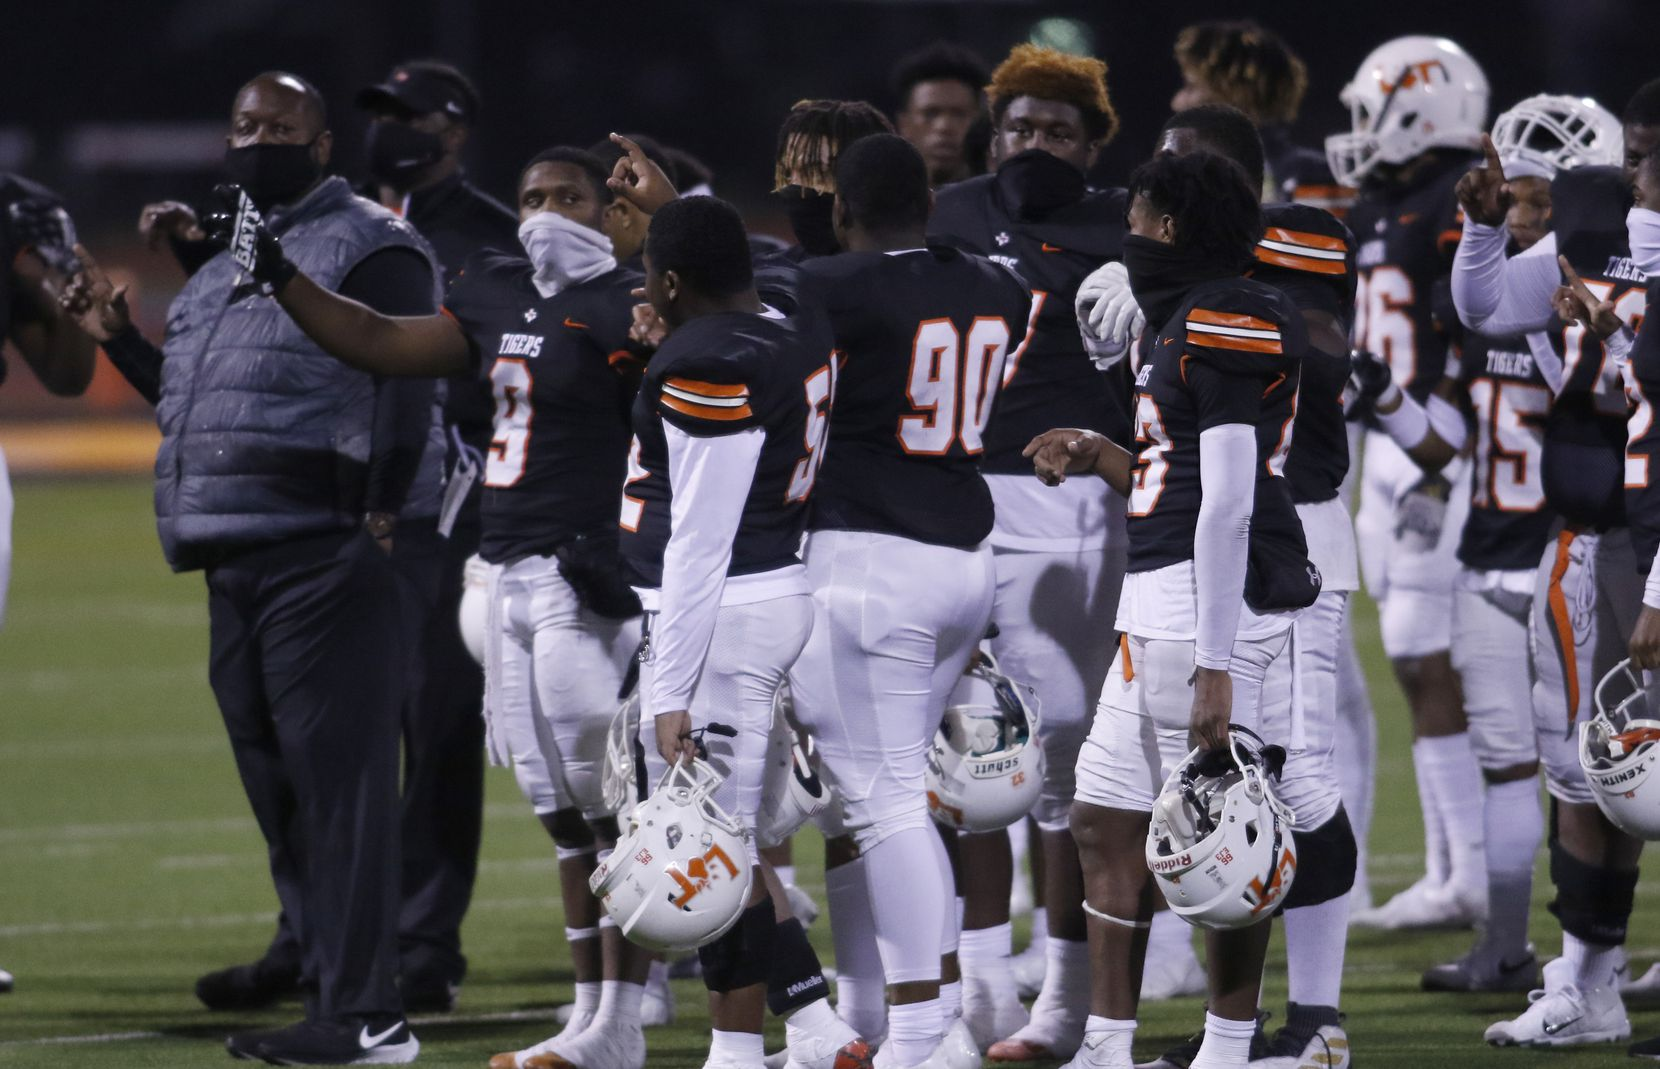 Lancaster head coach Chris Gilbert pauses with his Tigers players for the playing of their school song after their victory over Dallas Woodrow Wilson. The two teams played their District 6-5A Division 1 football game at Beverly D. Humphrey Tiger Stadium in Lancaster on November 20, 2020. (Steve Hamm/ Special Contributor)